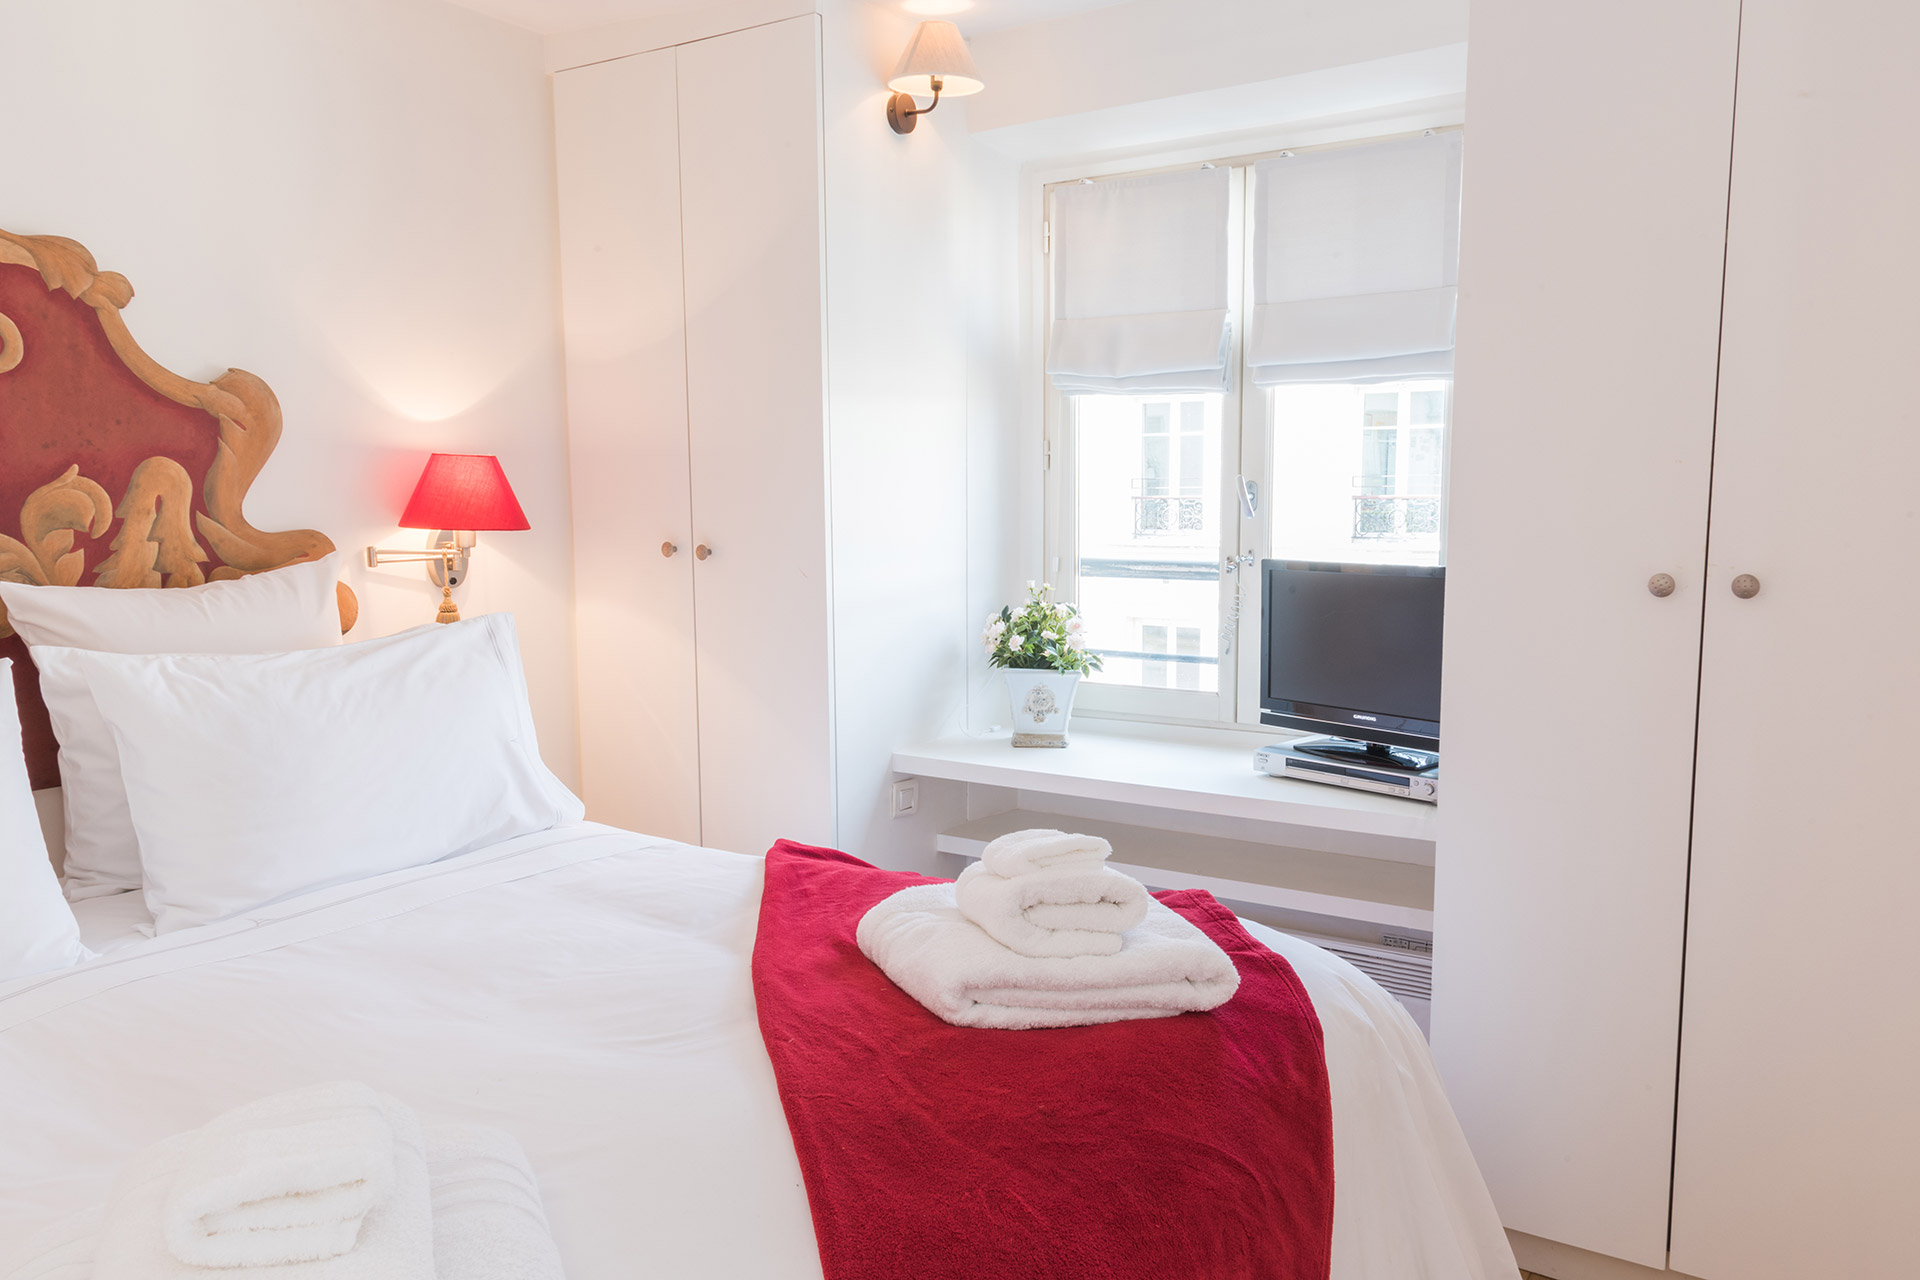 Large closets in the bedroom of the Pomerol vacation rental offered by Paris Perfect